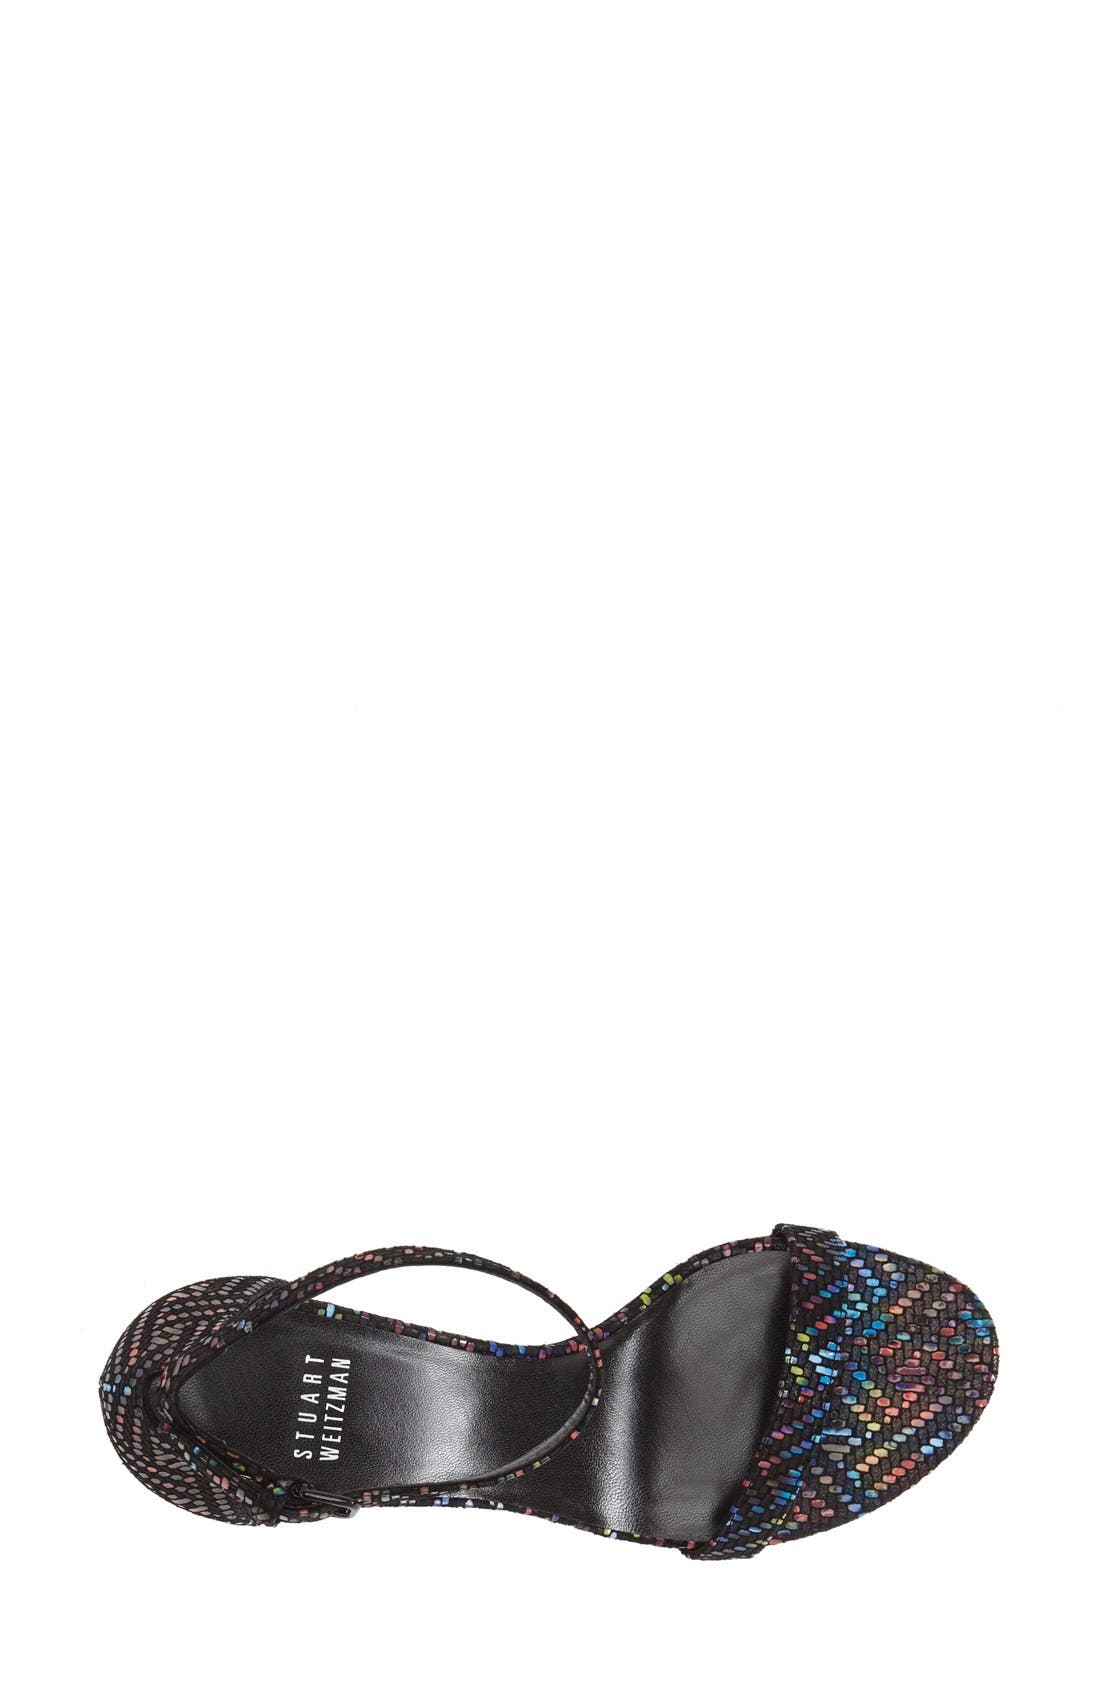 'Nunaked' Leather Ankle Strap Sandal,                             Alternate thumbnail 3, color,                             Multi Technicolor Nappa